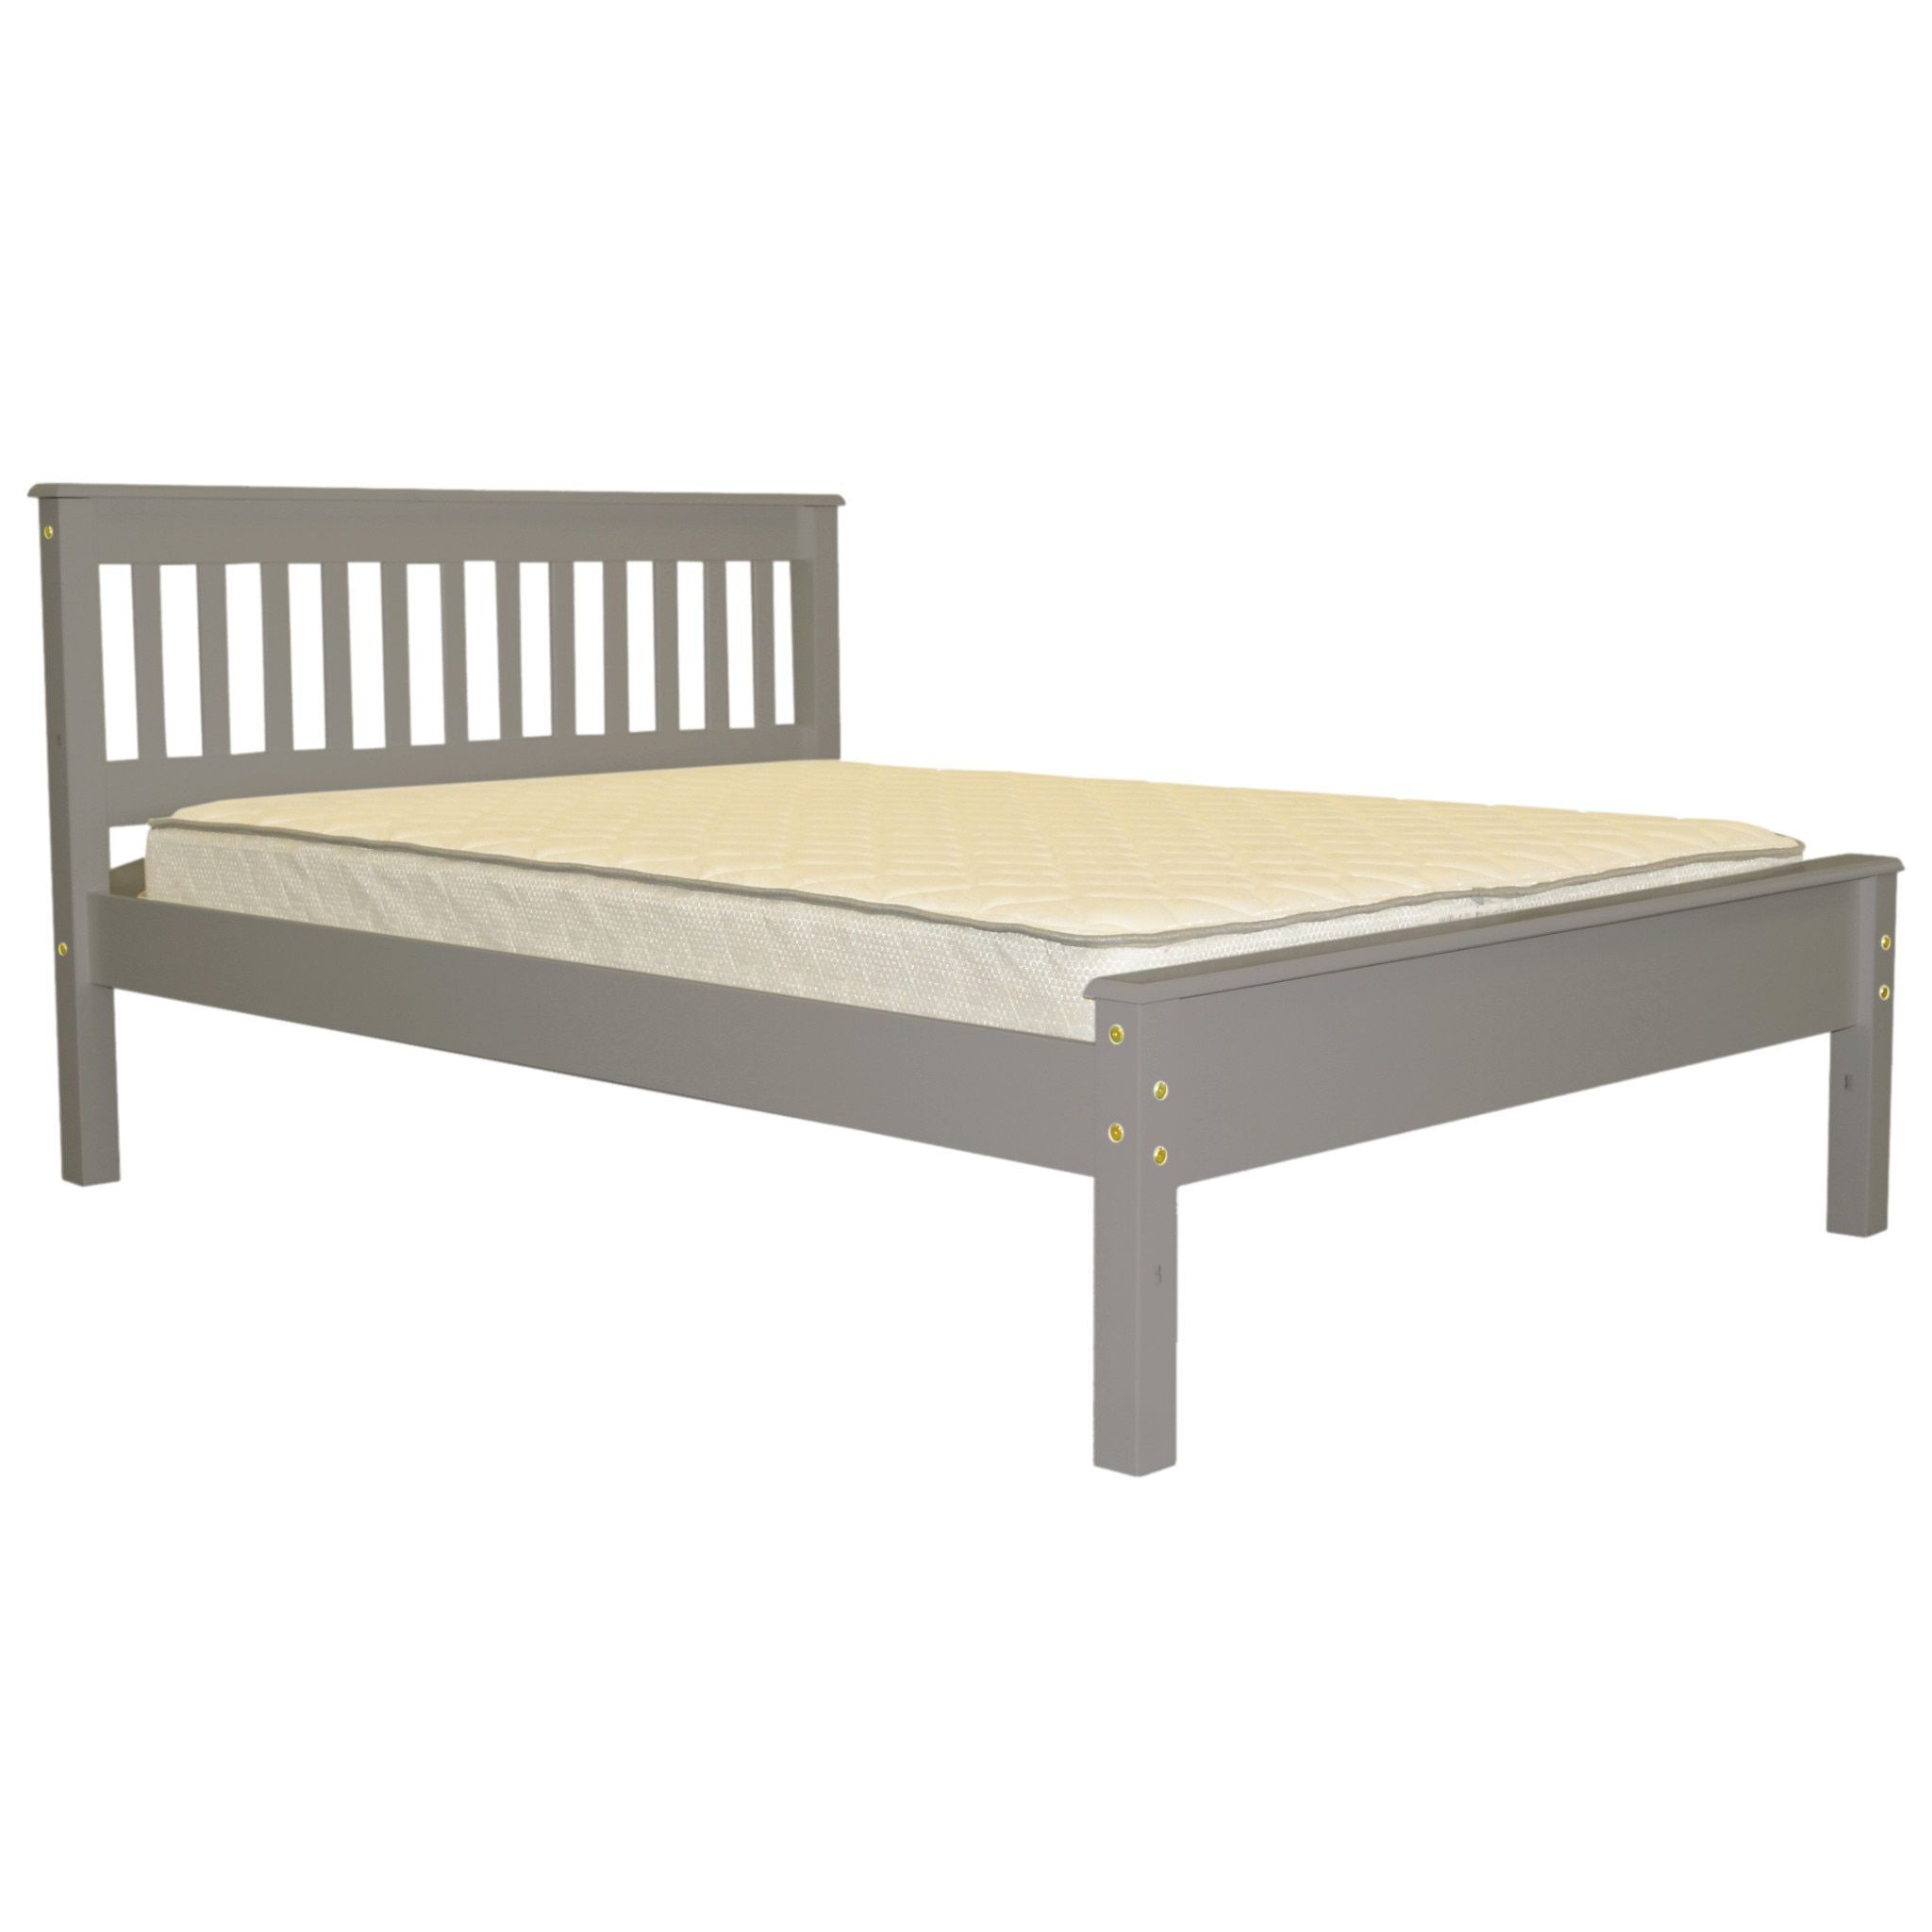 Bedz king full bed gray full gray grey full bed outlet store